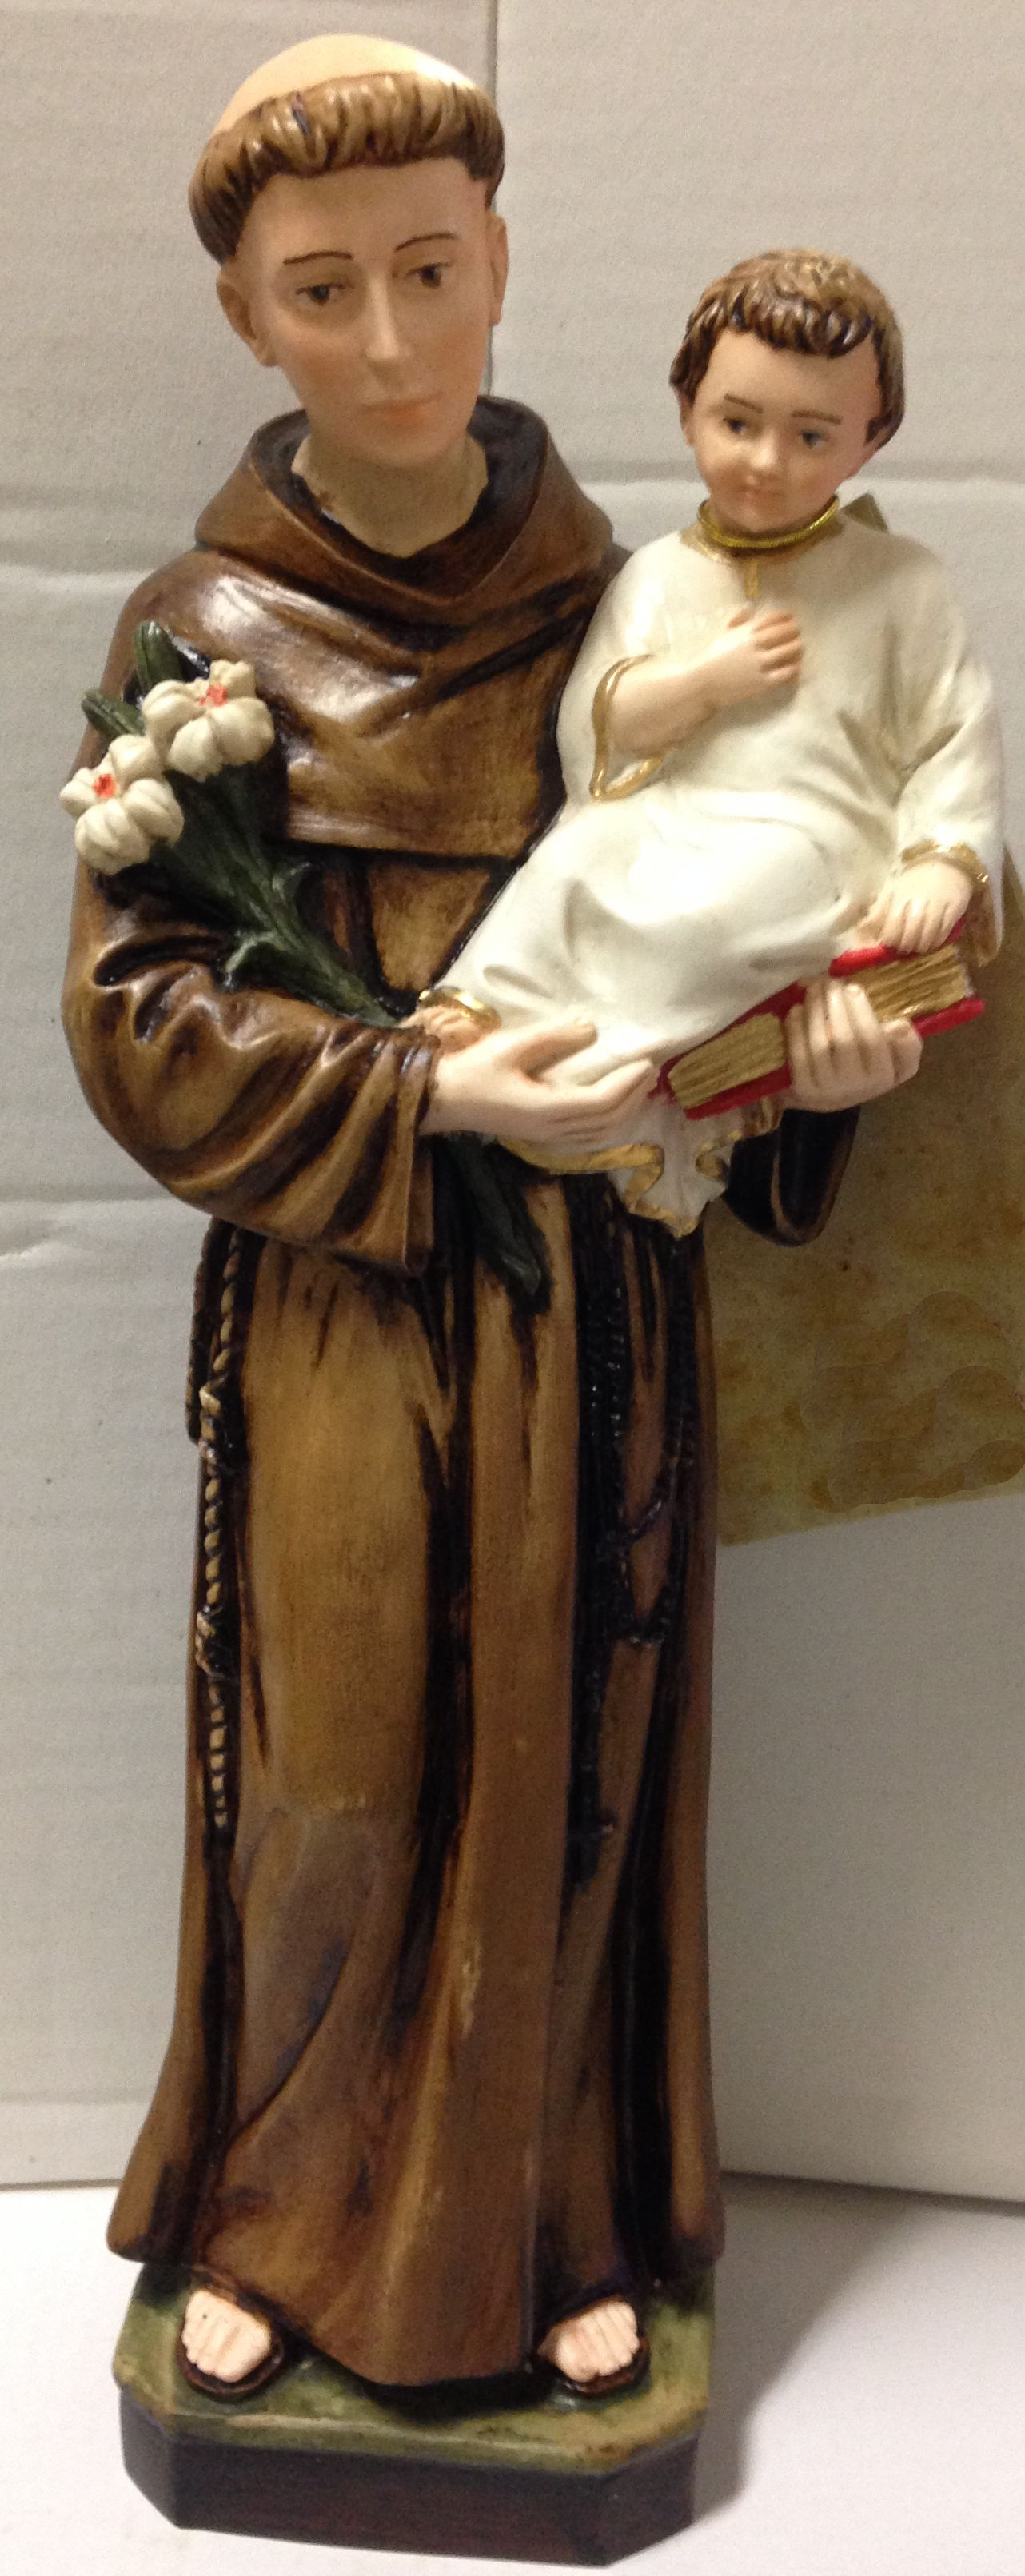 St. Anthony of Padua Statue statue, st. anthony, home decor, church decor, saint statue, 4025101